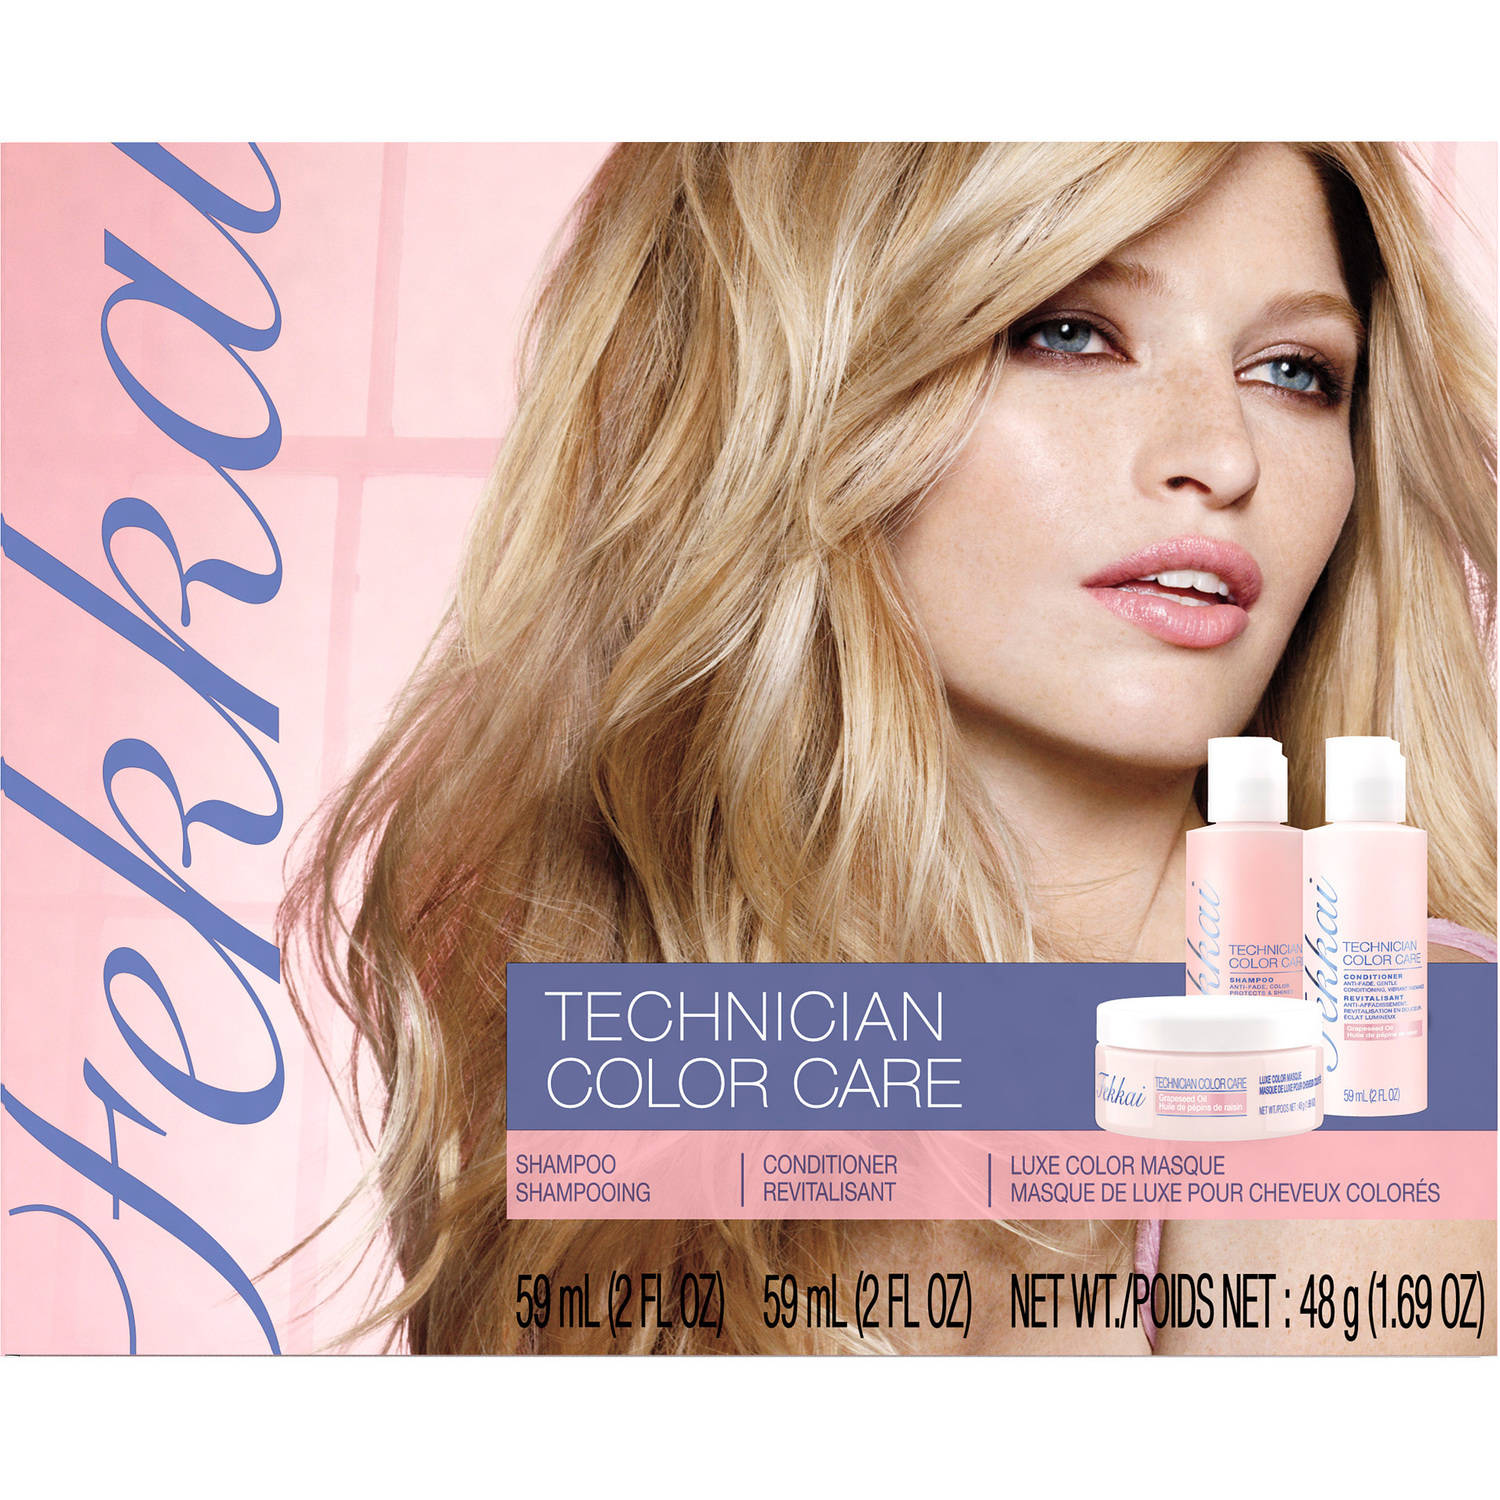 Fekkai Technician Color Care Hair Care Kit, 3 pc